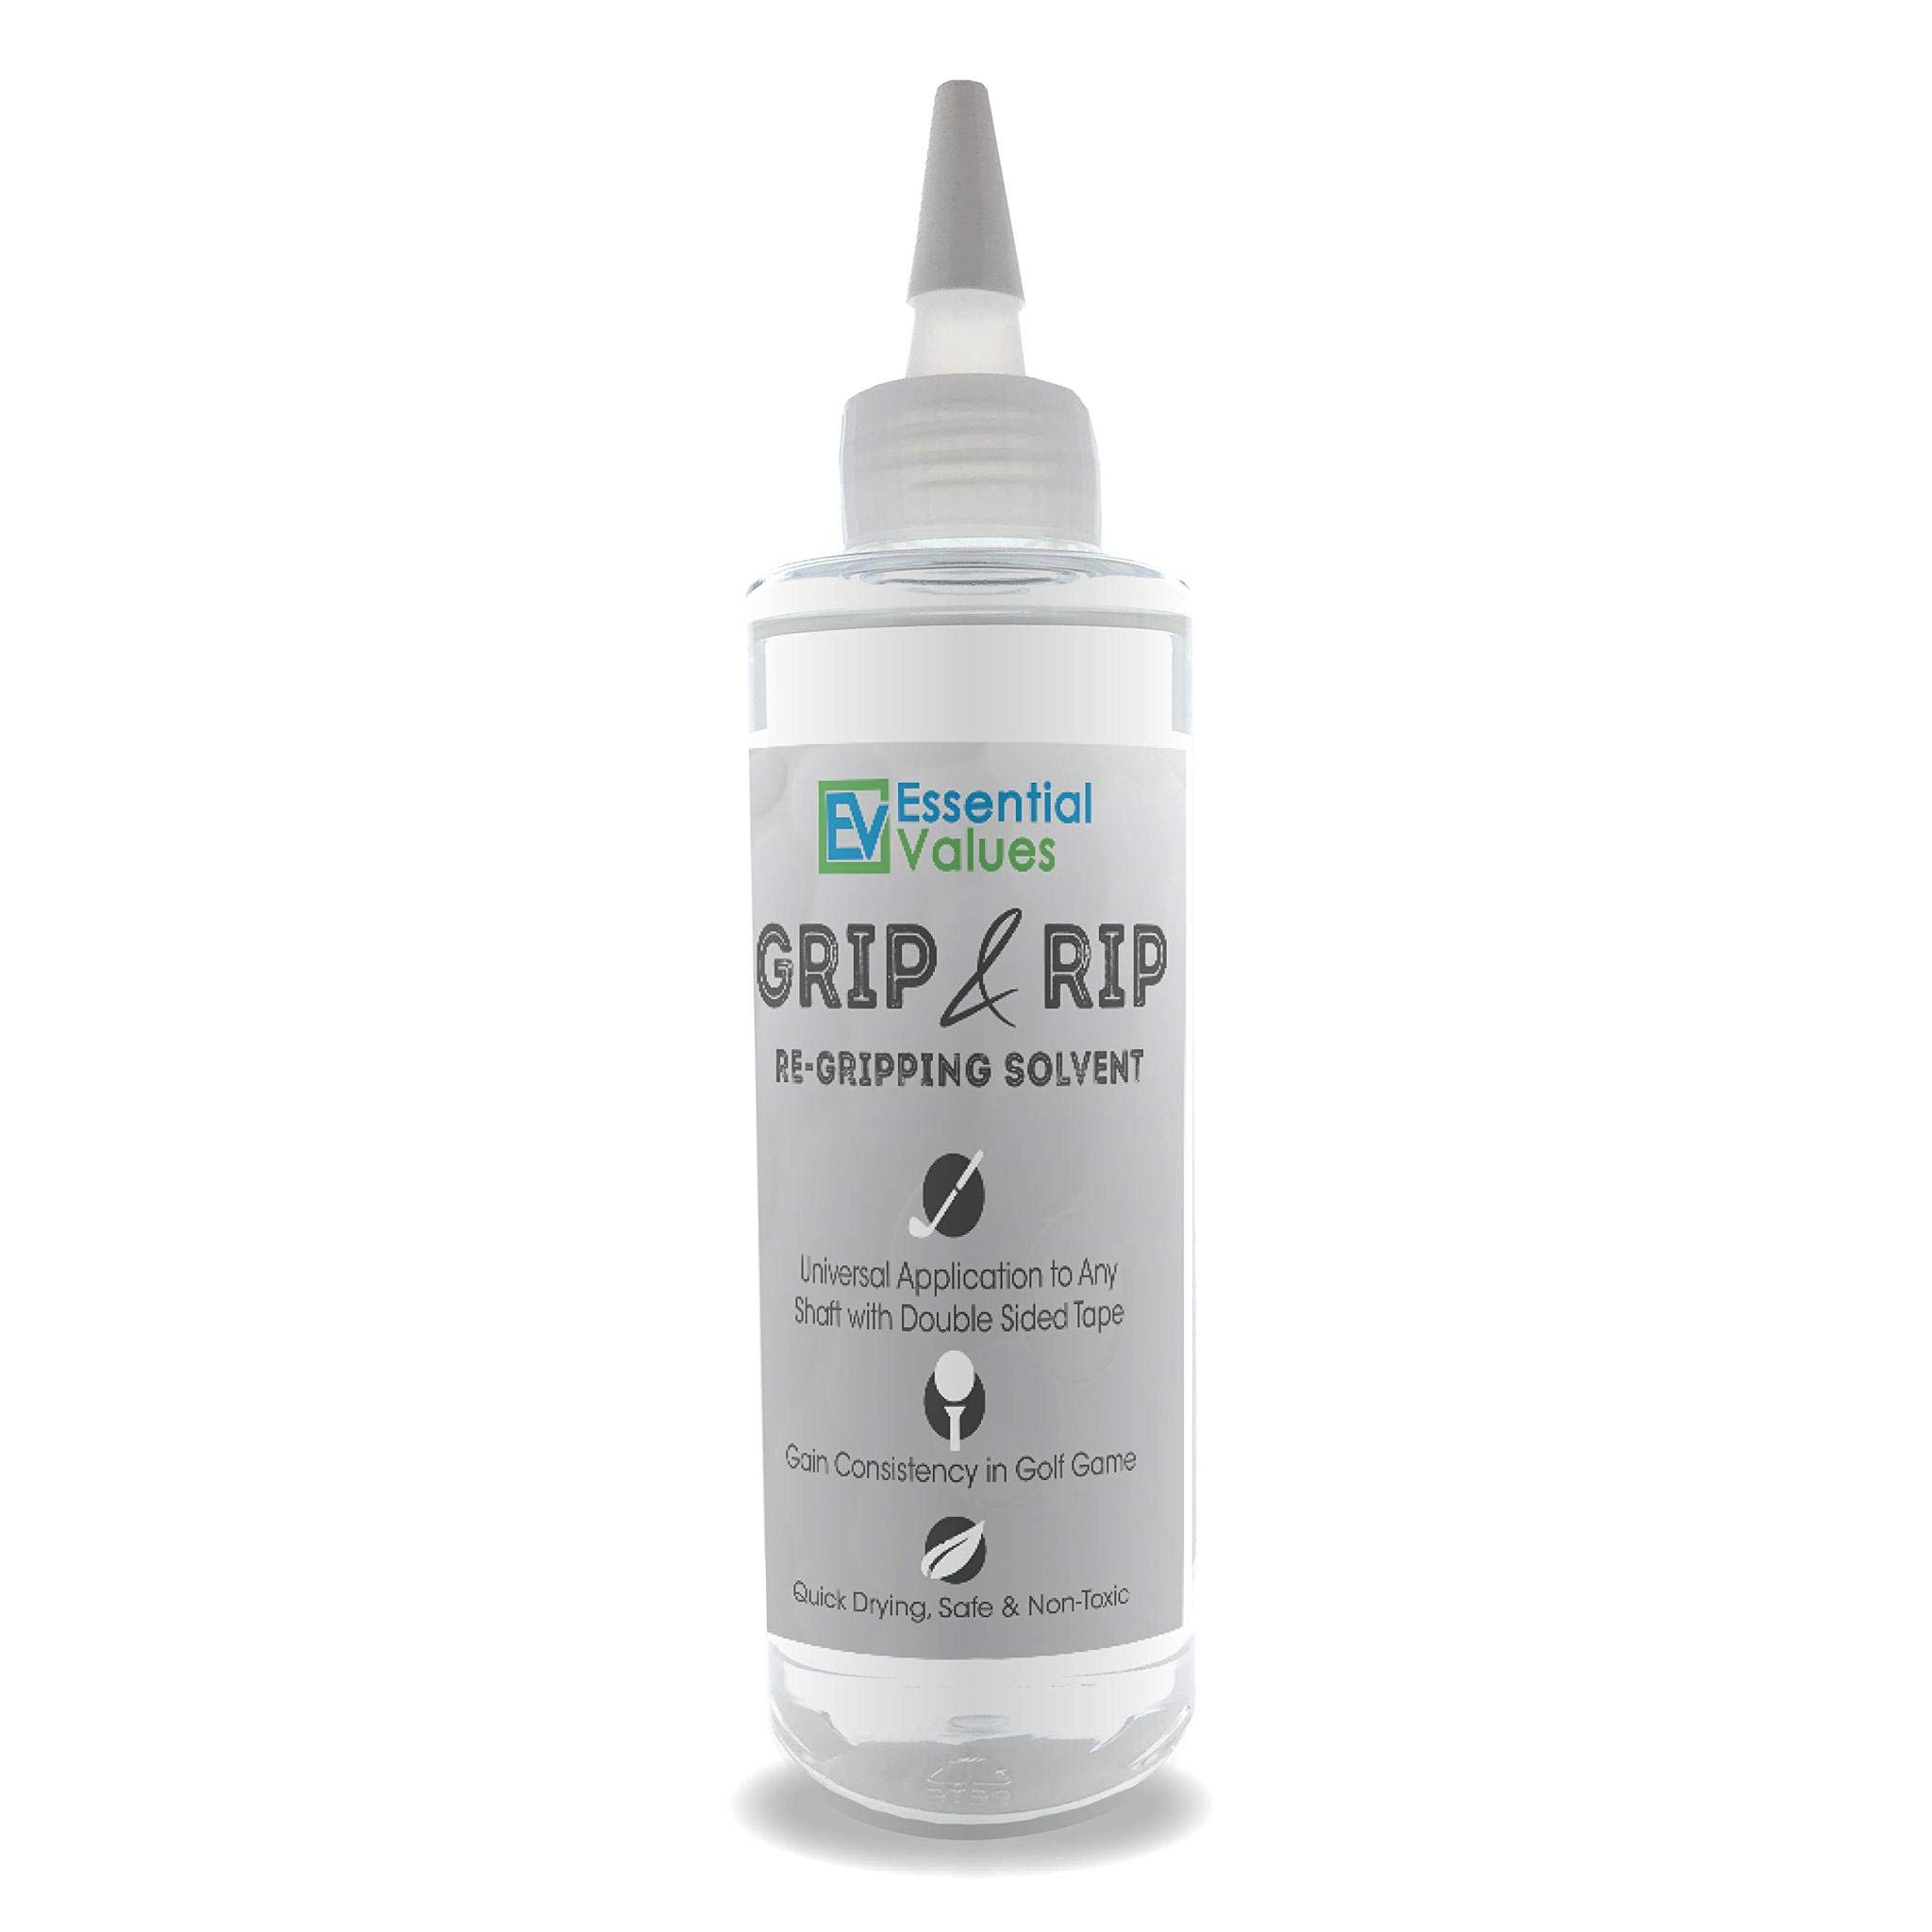 Essential Values Golf Regripping Solvent (8 Fl Oz), Double The Solution Compared to Others - Excellent for Quick & Easy Regripping of Golf Clubs - Made in USA